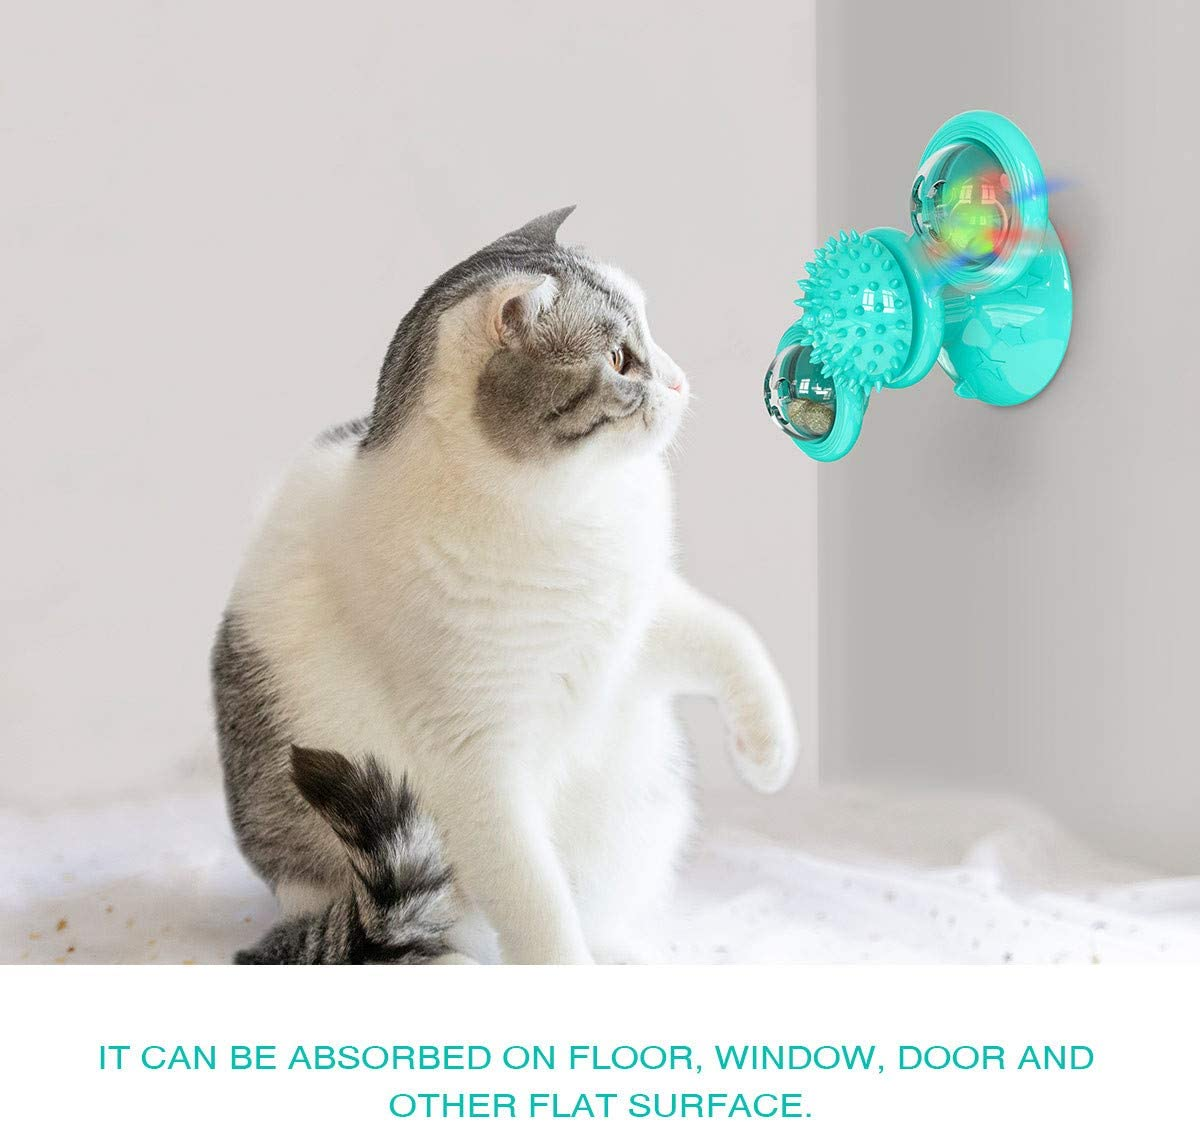 Blue Dotoner Windmill Cat Toy with Catnip Ball and LED Ball Turntable Teasing Interactive Toys Funny Kitten Windmill ball Massage Scratch Brush